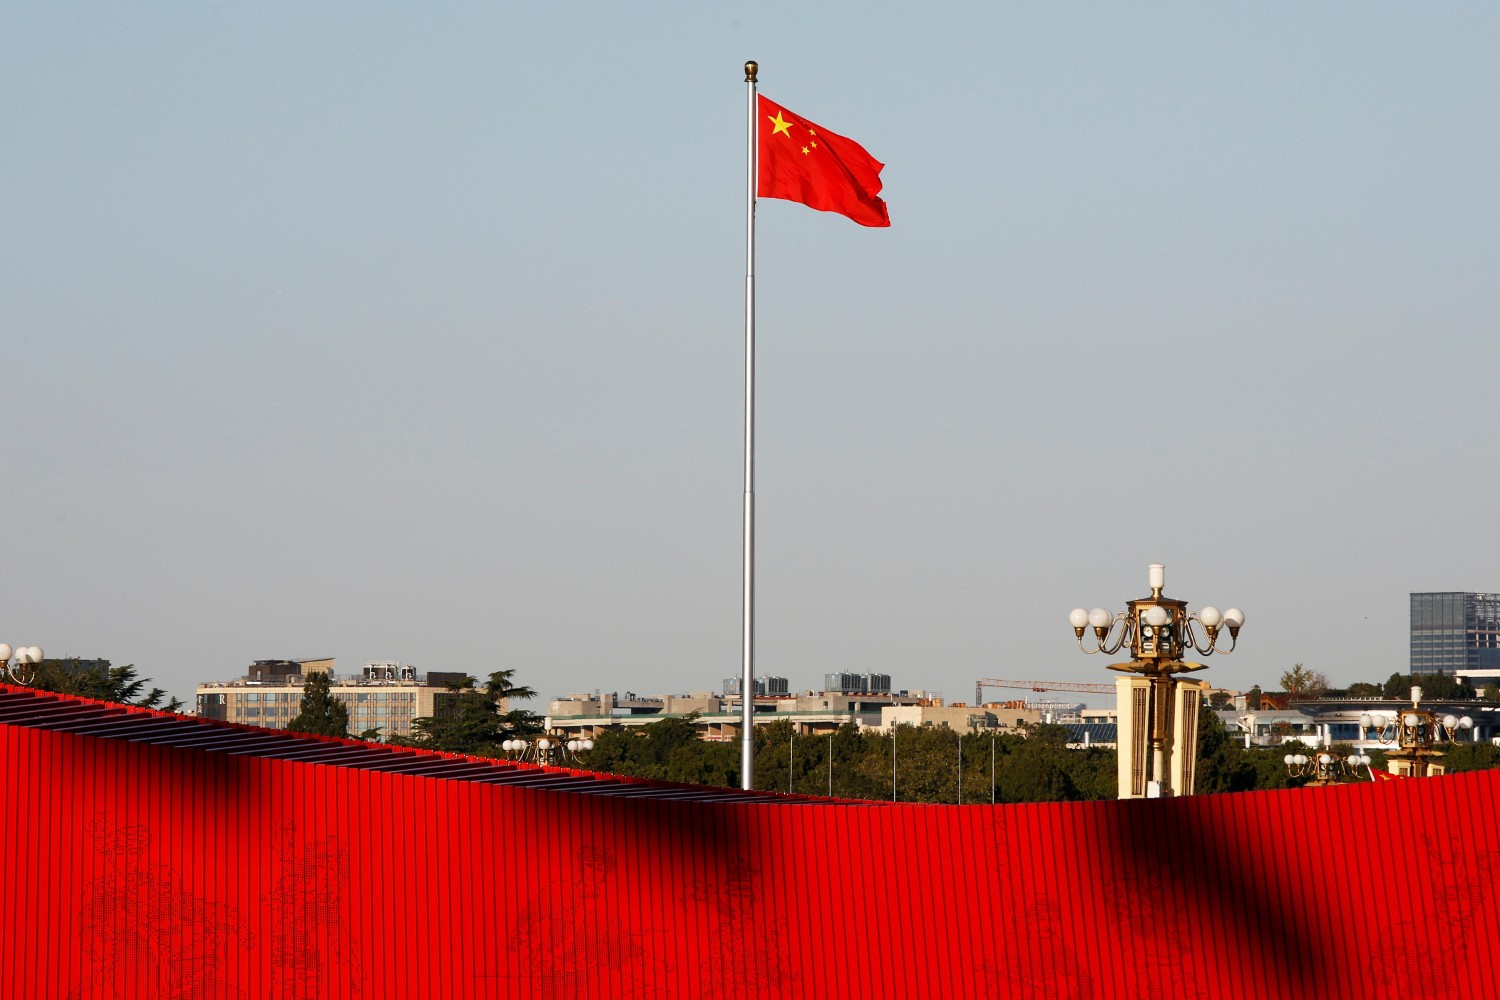 A Chinese flag flutters at the Tiananmen Square in Beijing, China October 25, 2019. REUTERS/Florence Lo